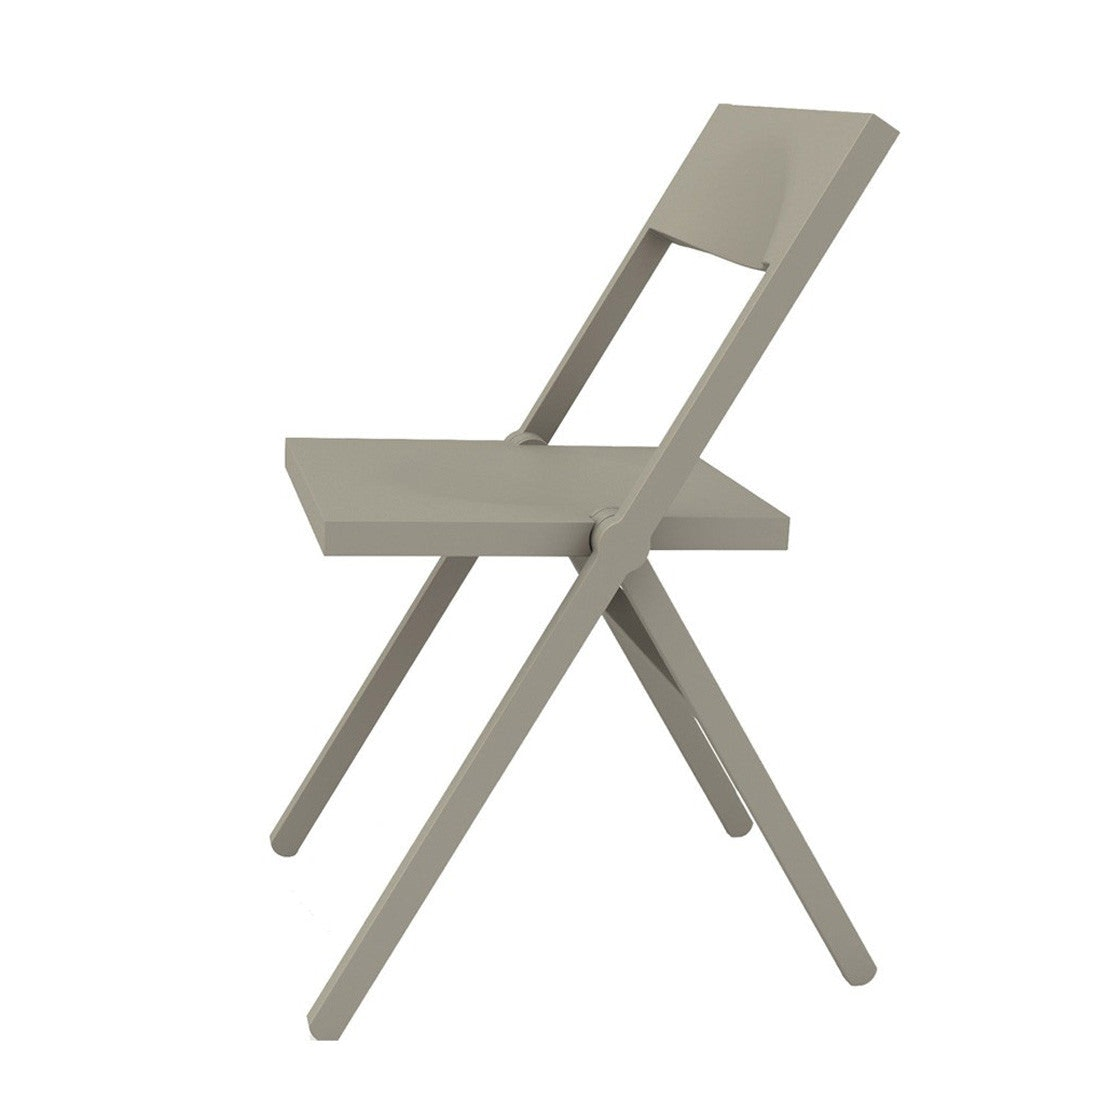 Piana Folding chair by David Chipperfield — haus